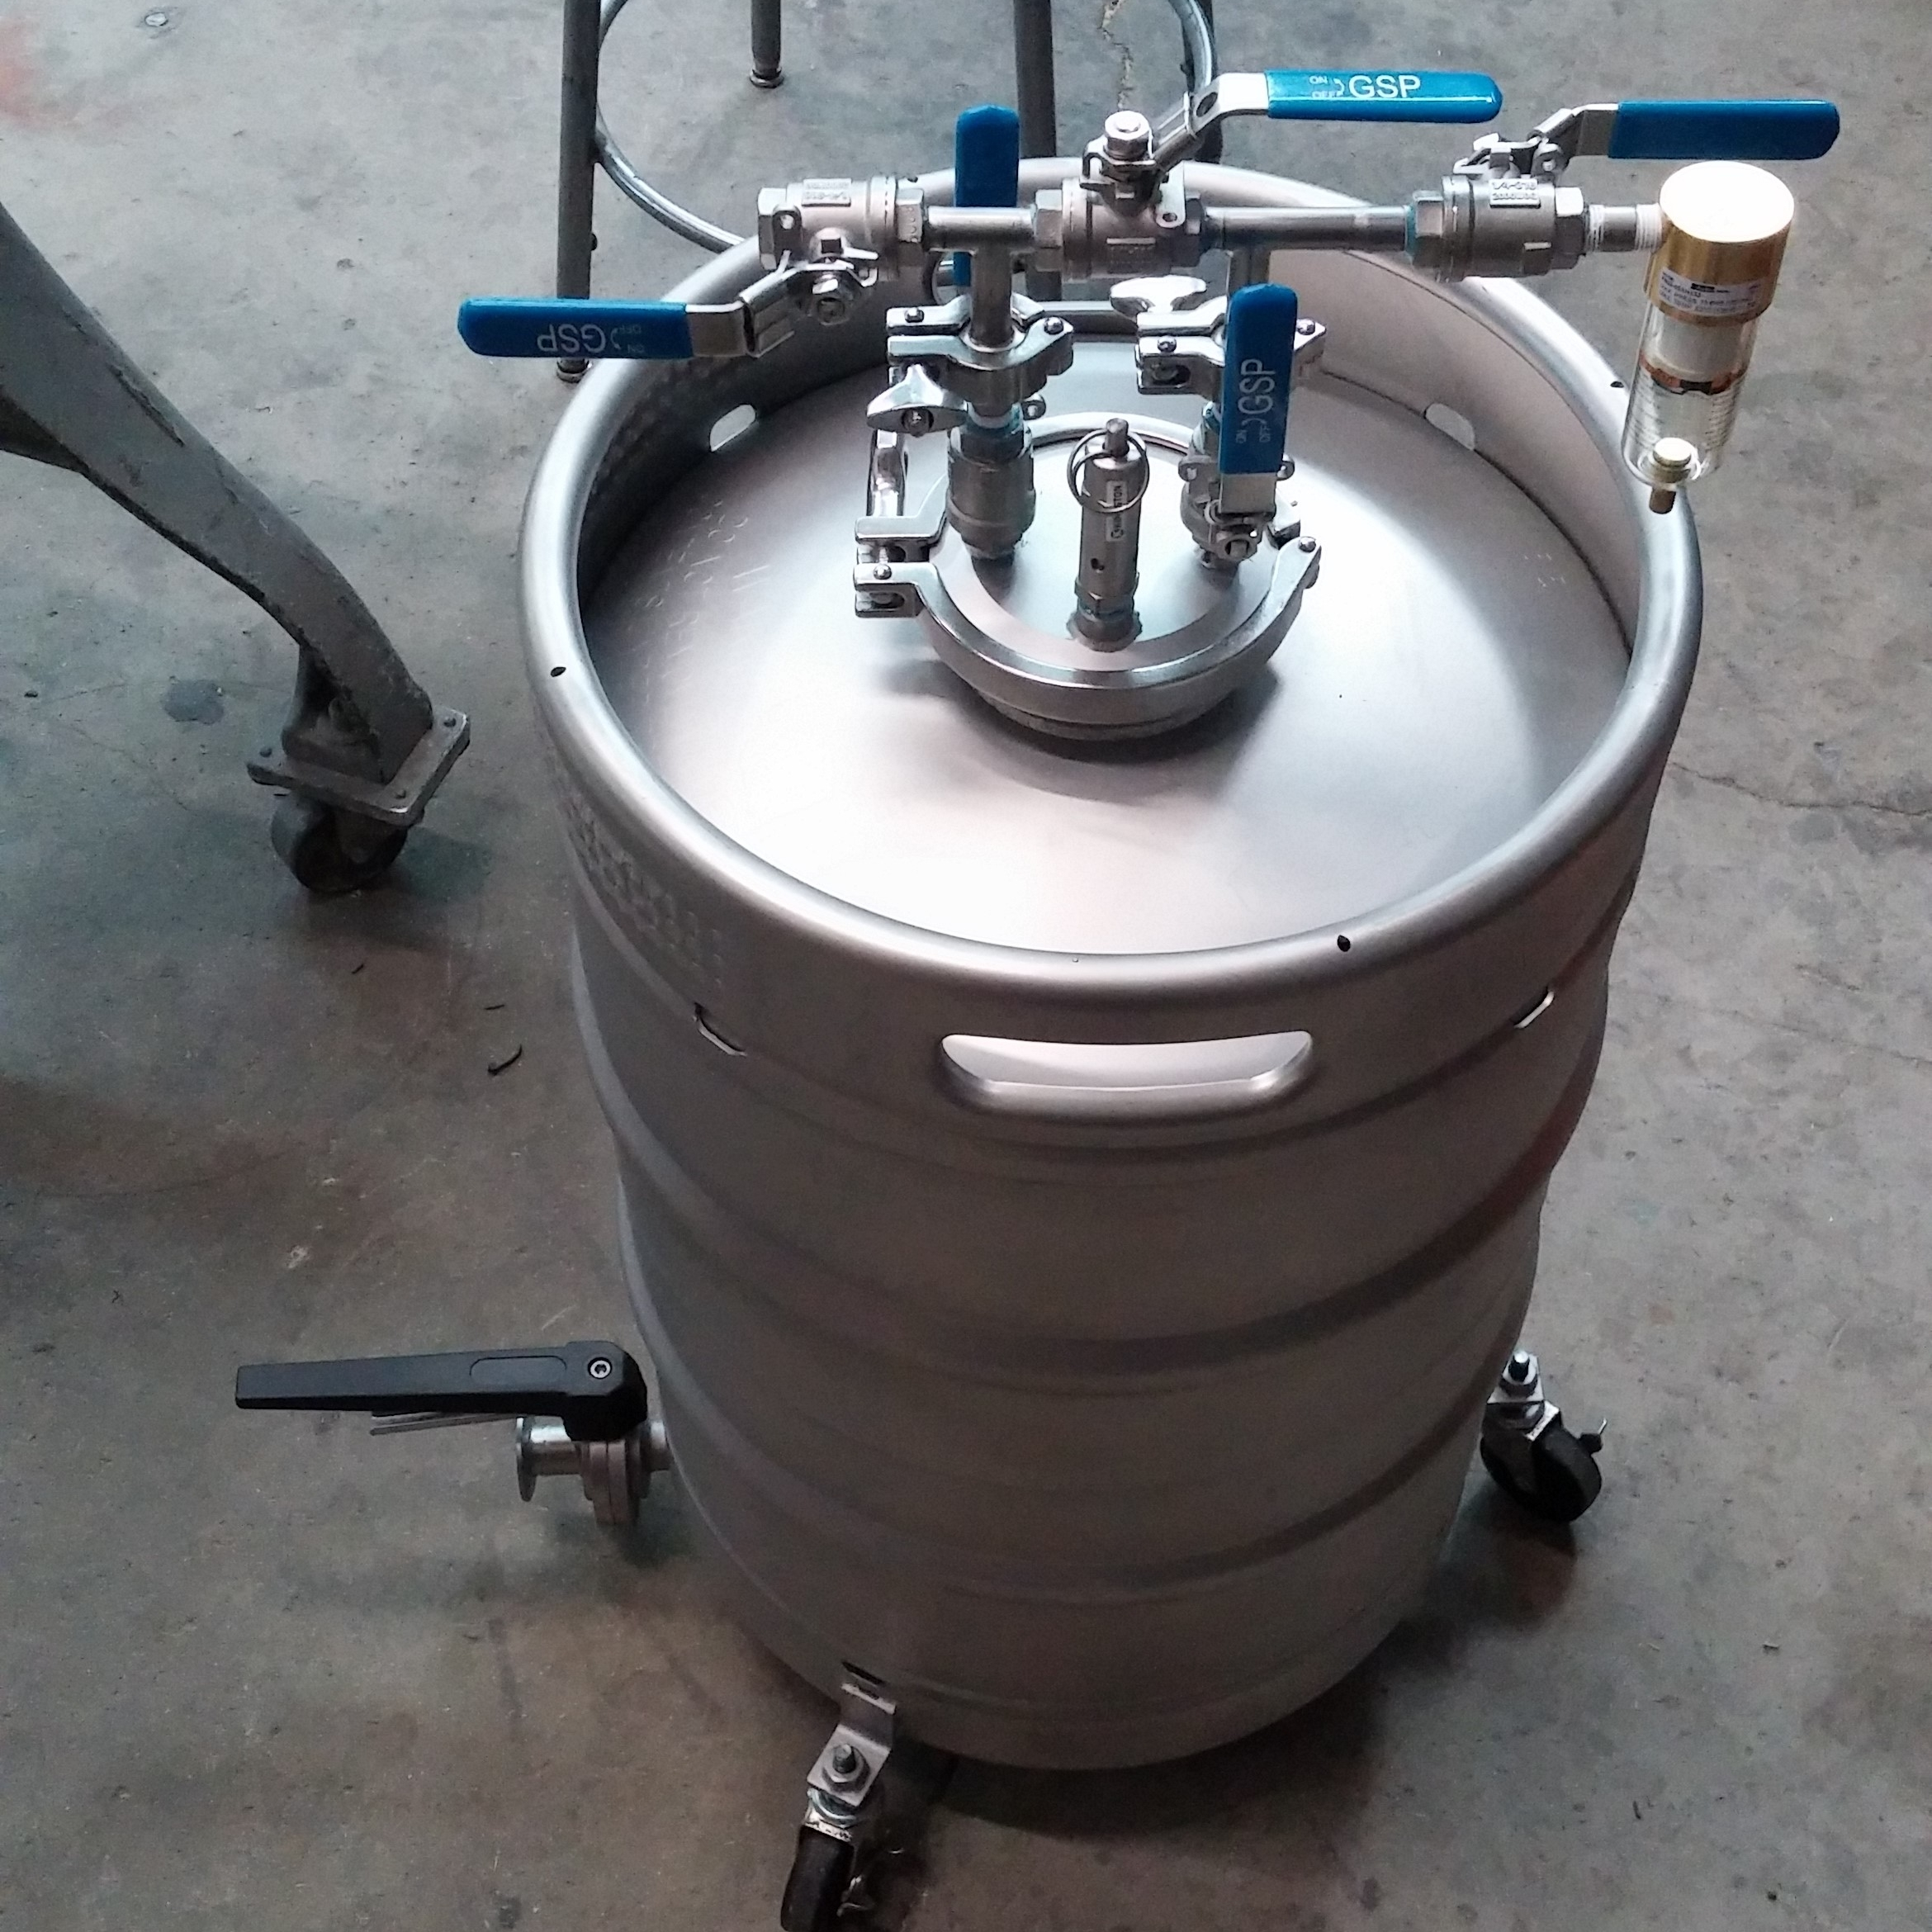 Yeast Kegs - Propagation, storage, washing, aeration, and dispensing.  The perfect solution for smaller breweries.